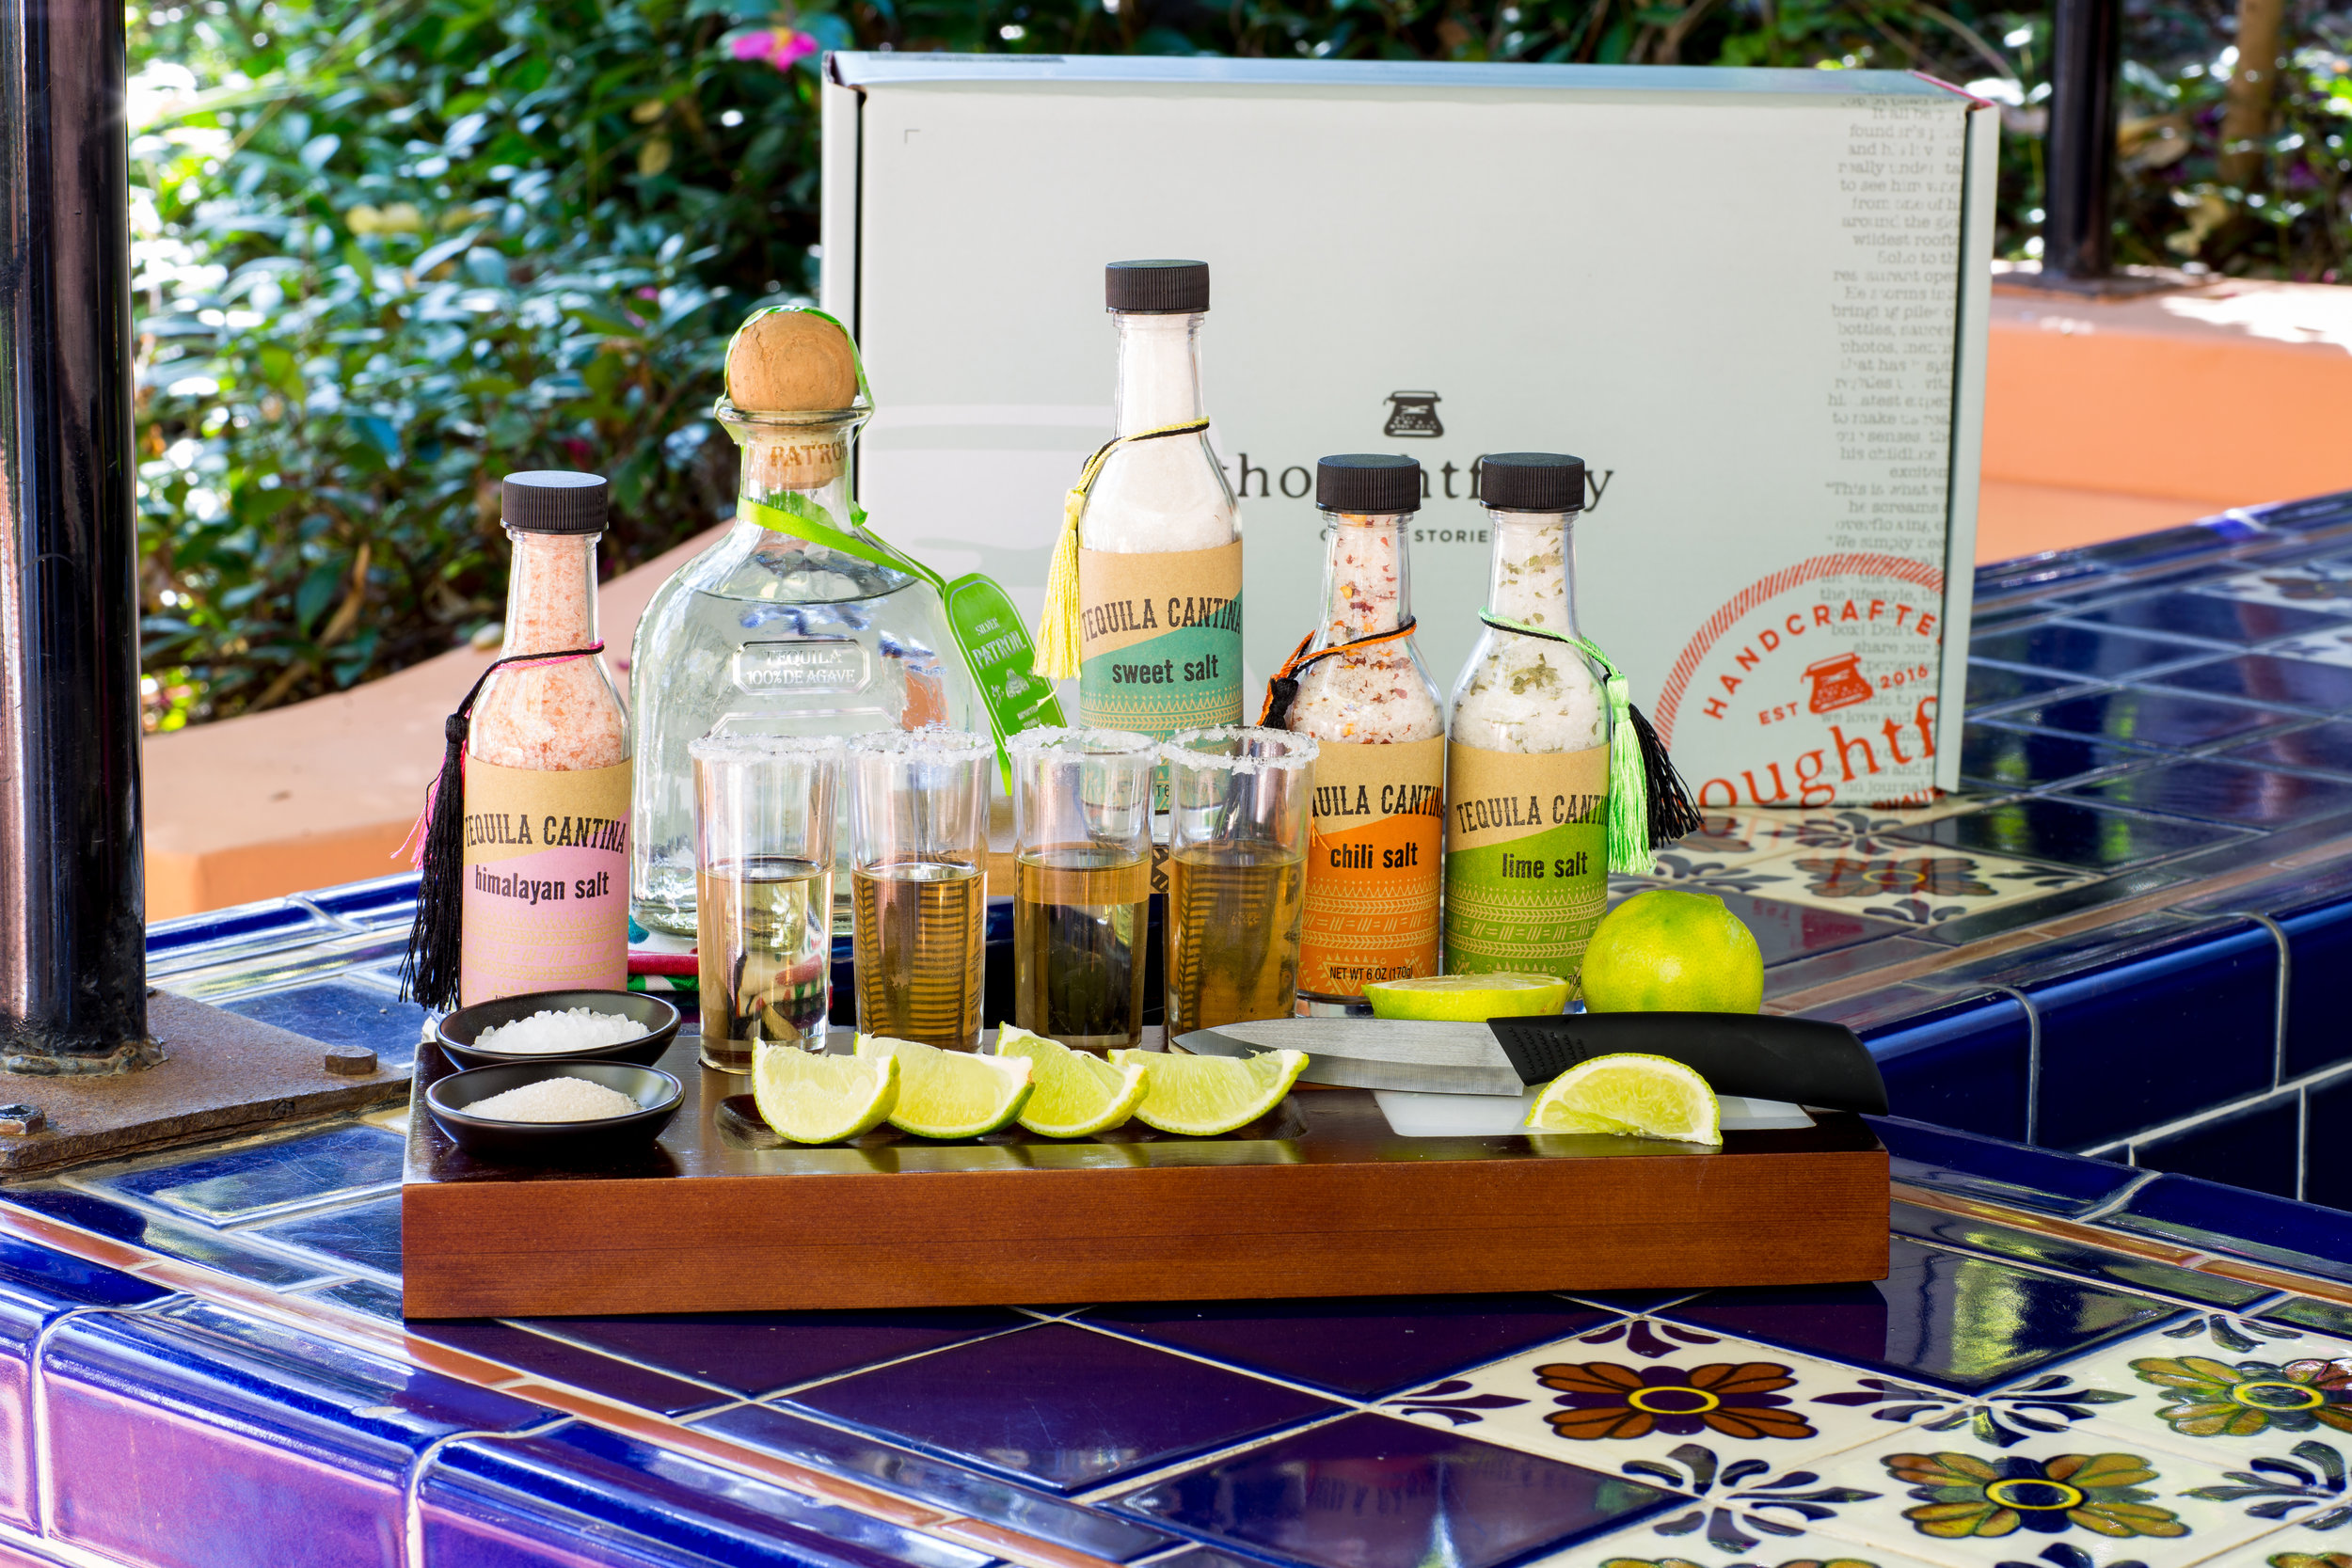 Thoughtfully Tequila Cantina Box